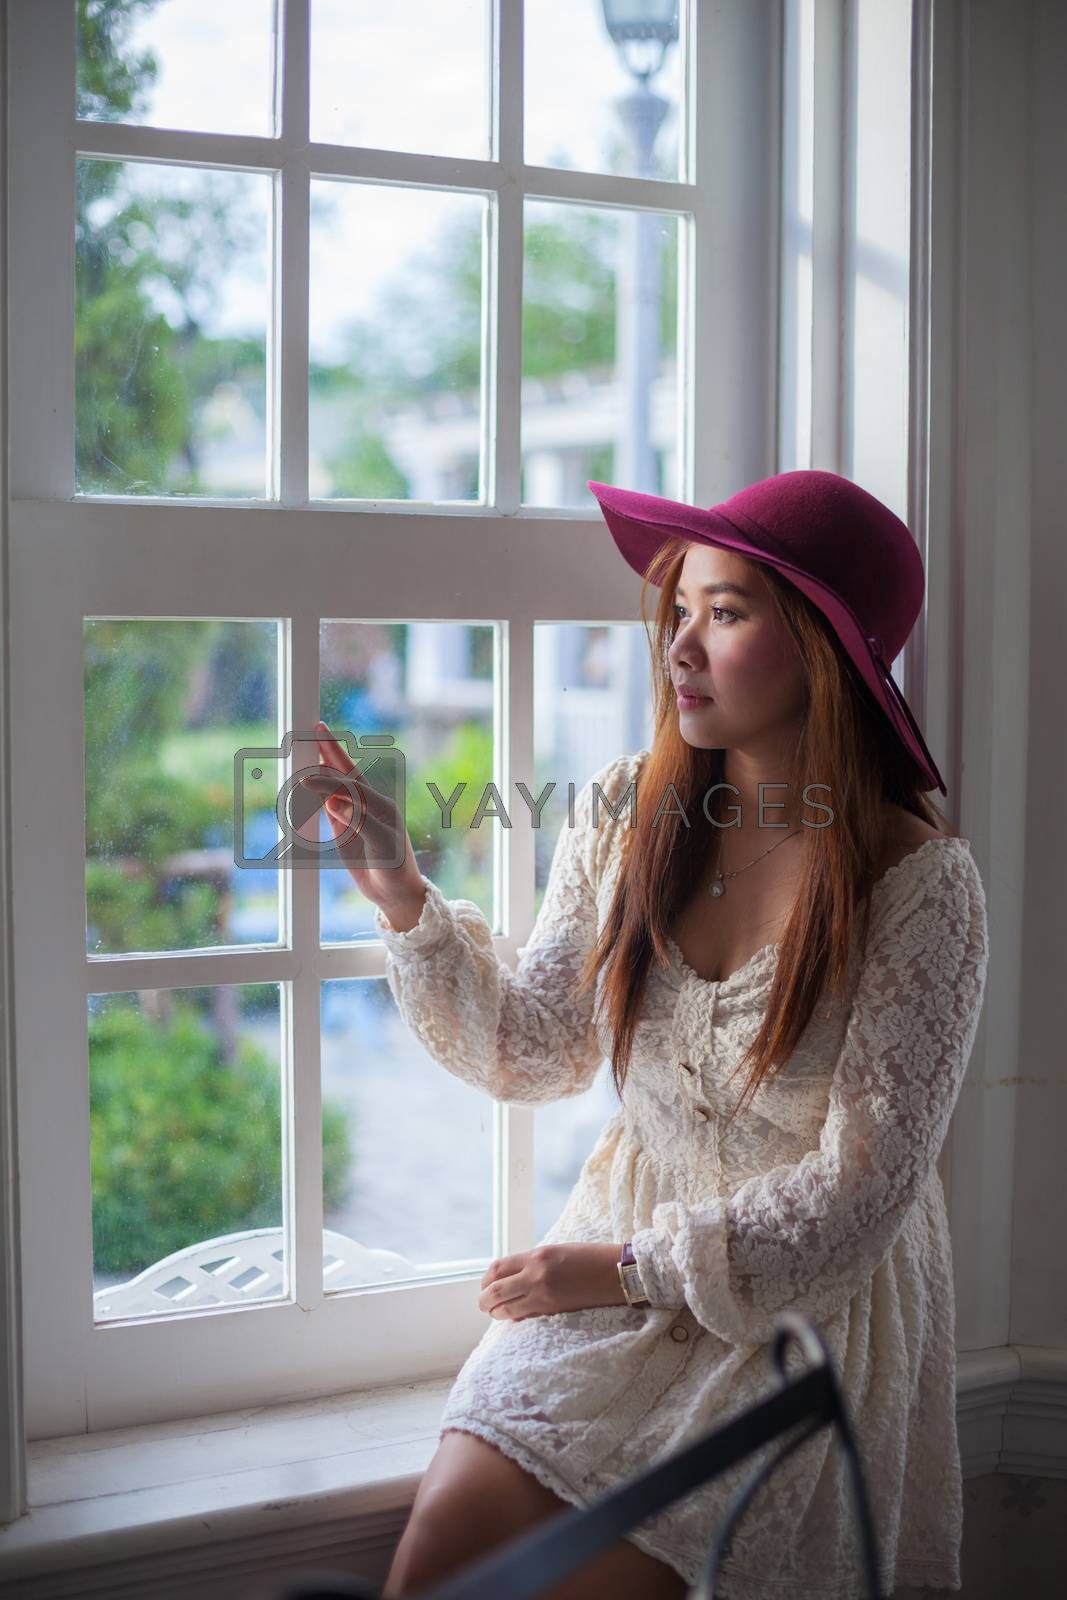 Sad asian vintage woman on the window looking out the window